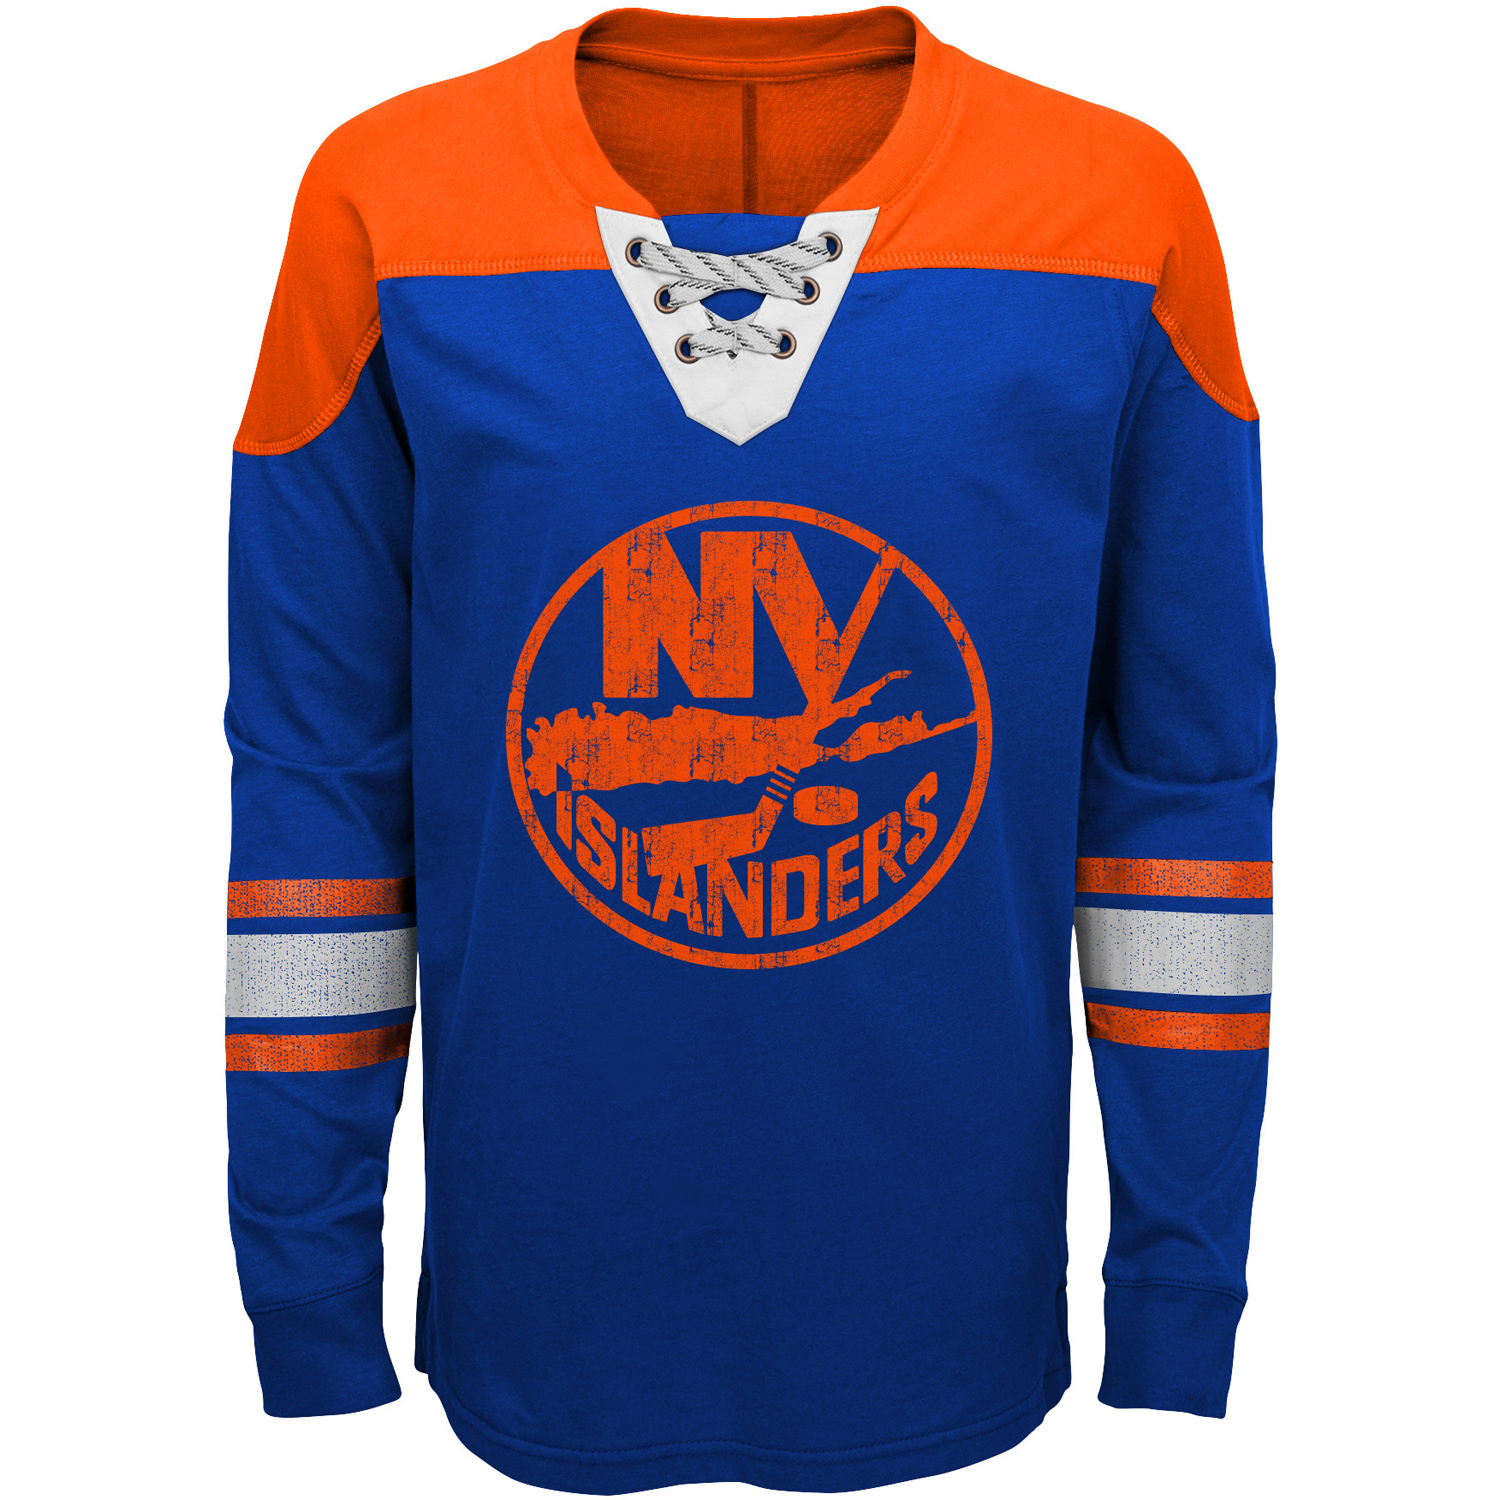 New York Islanders Youth Perennial Hockey Lace-Up Crew Sweatshirt Blue Orange by Outerstuff